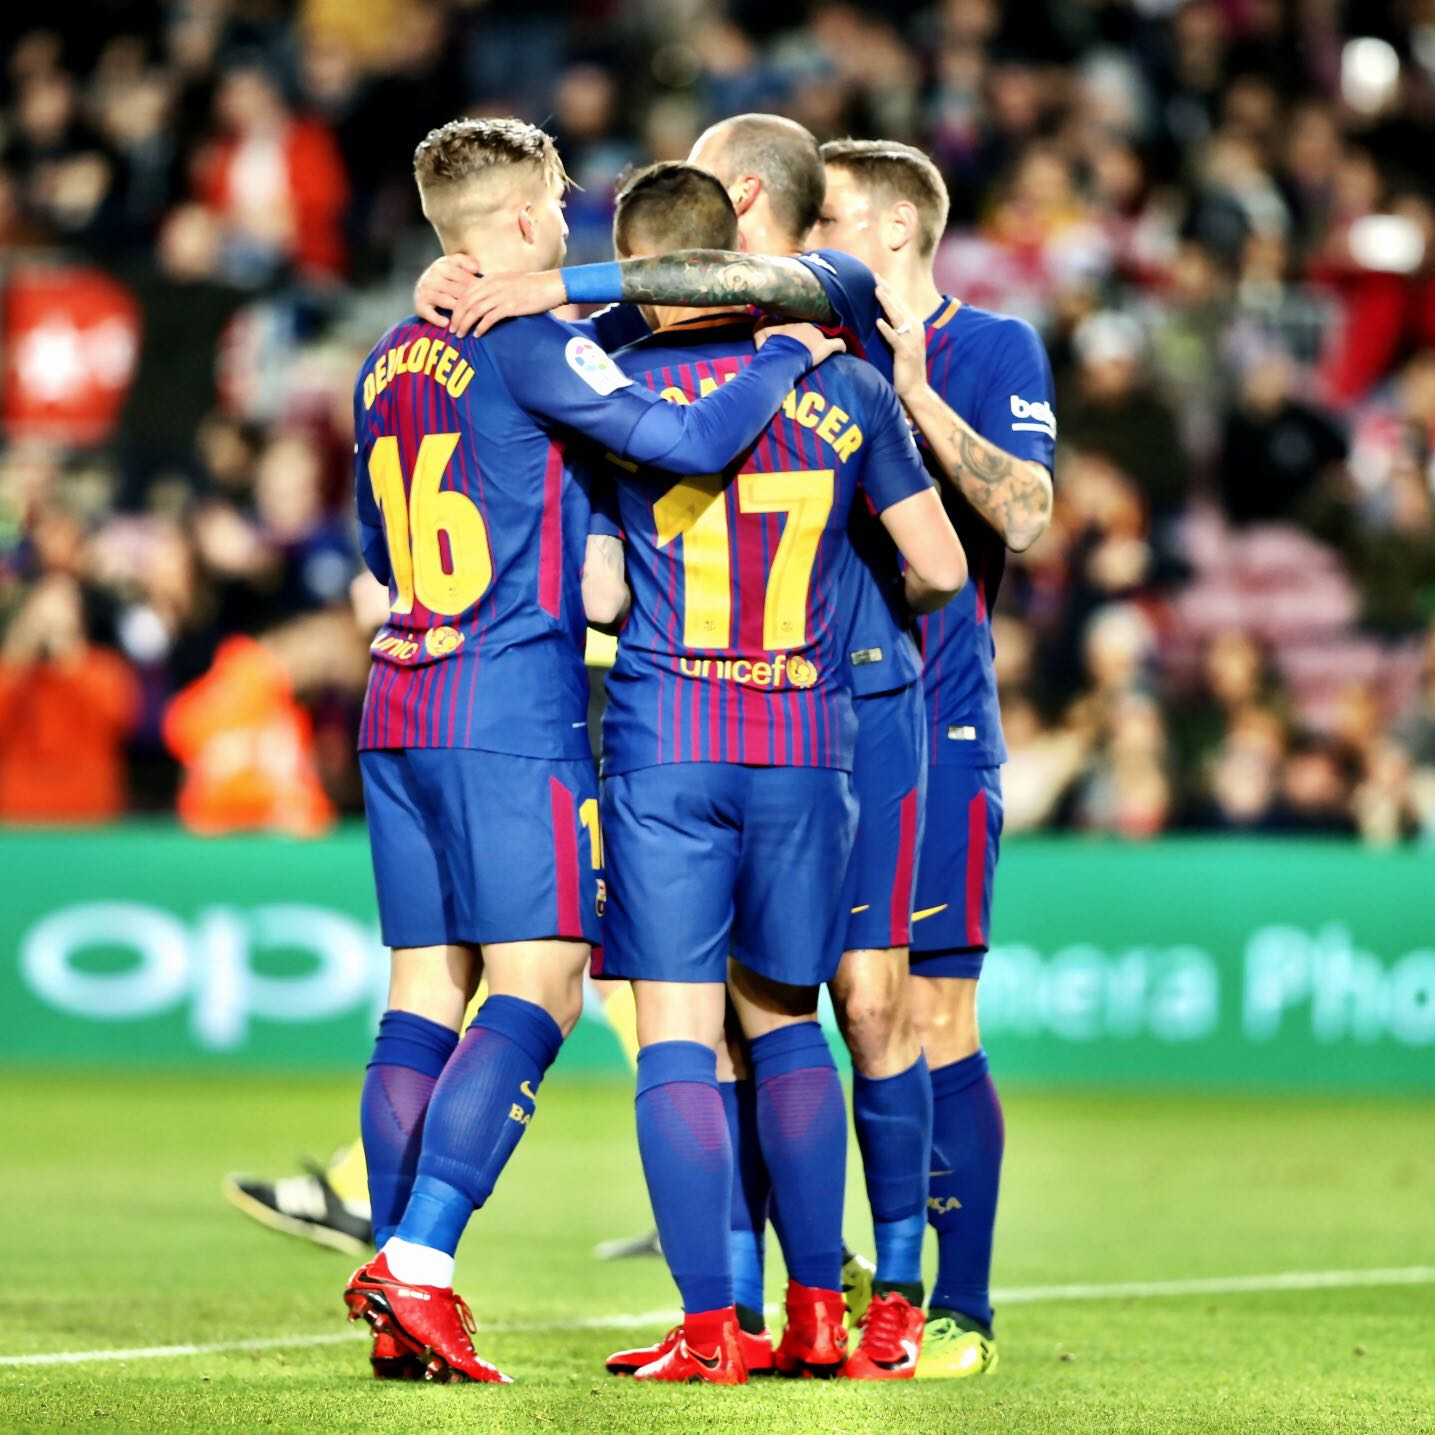 Barcelona vs Murcia Highlights